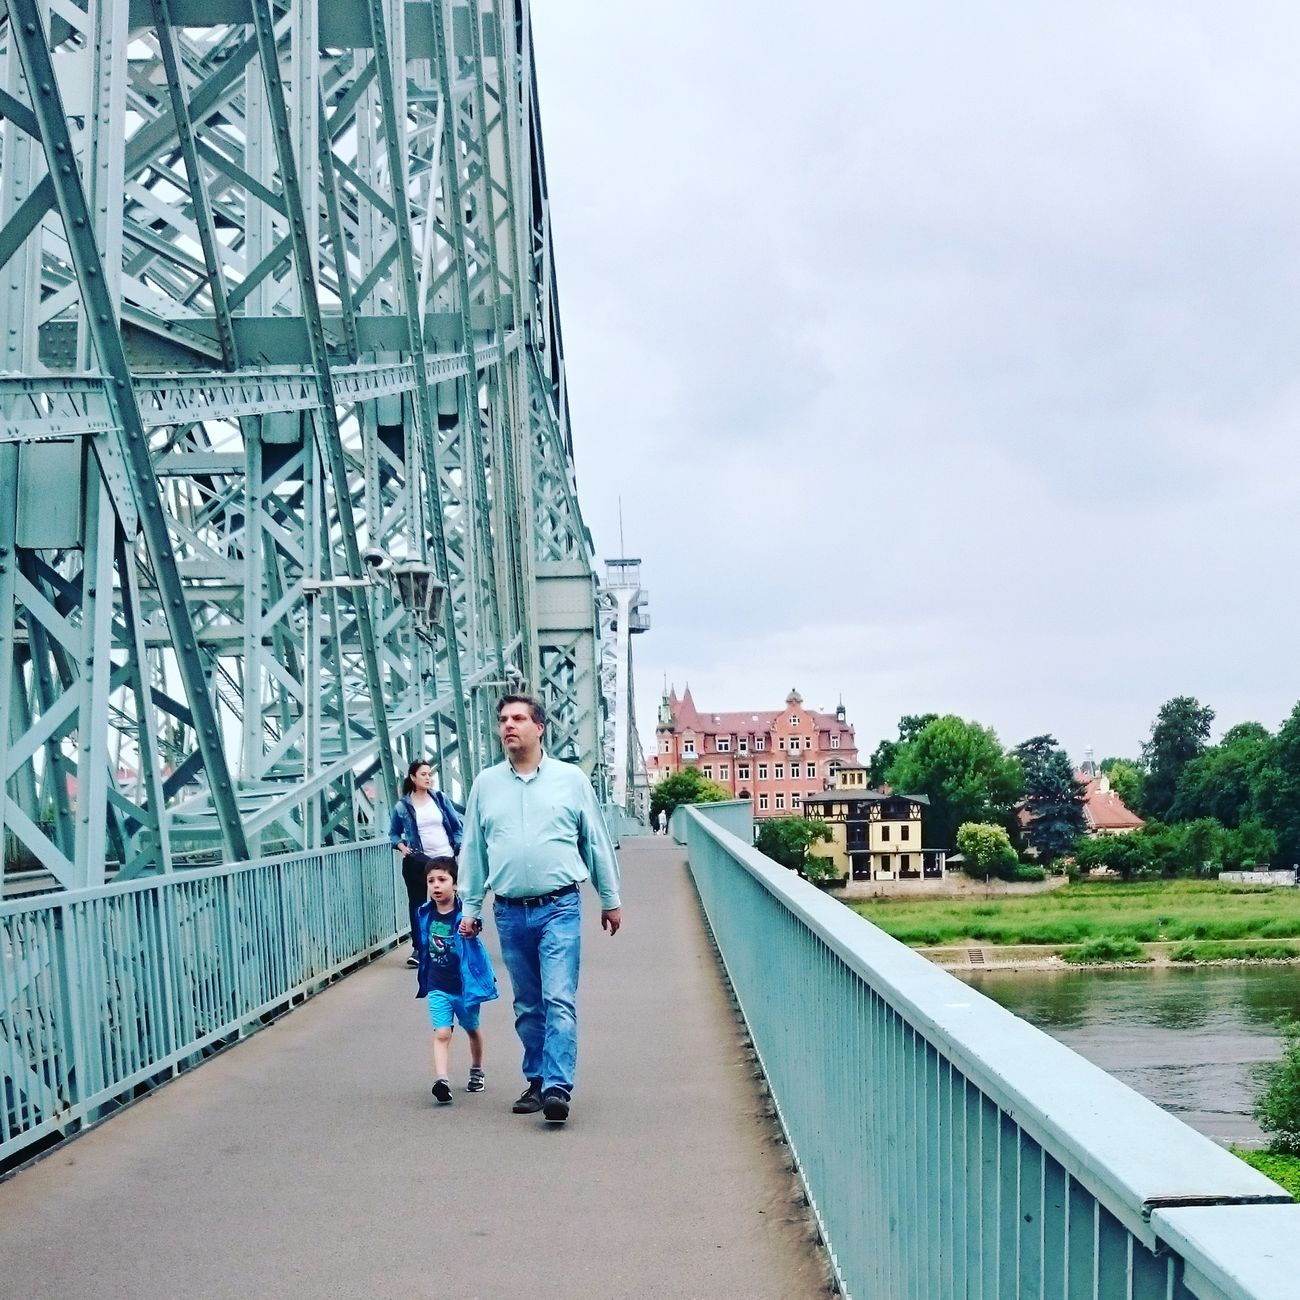 Perfect Match Turquoise Colored Blaueswunder Father And Daughter Bridge Colorful Small Town Outdoors Architecturephotography Eyemphotography